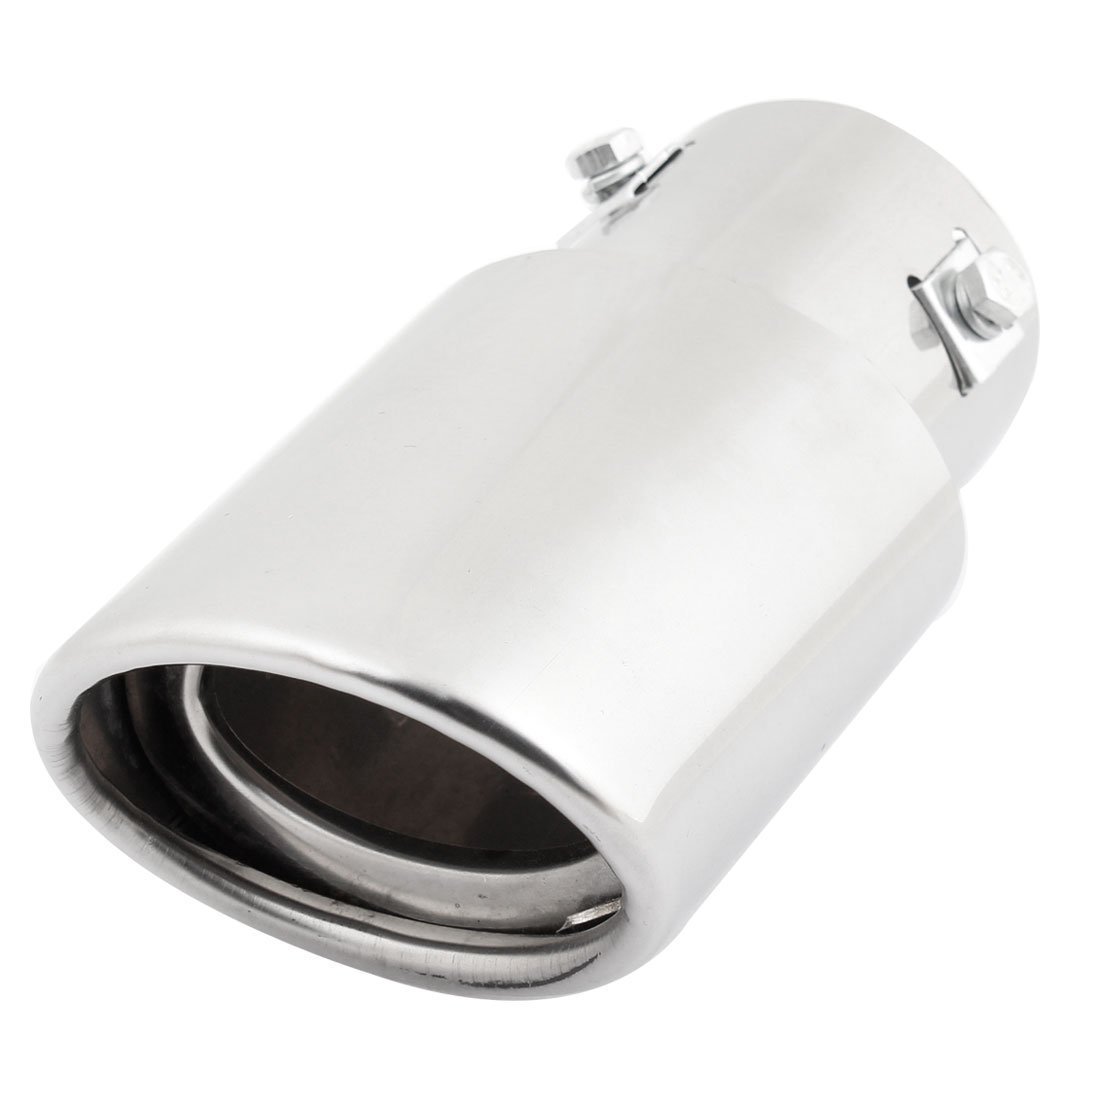 60mm Inlet Dia Oval Slanted Exhaust Muffler Tip